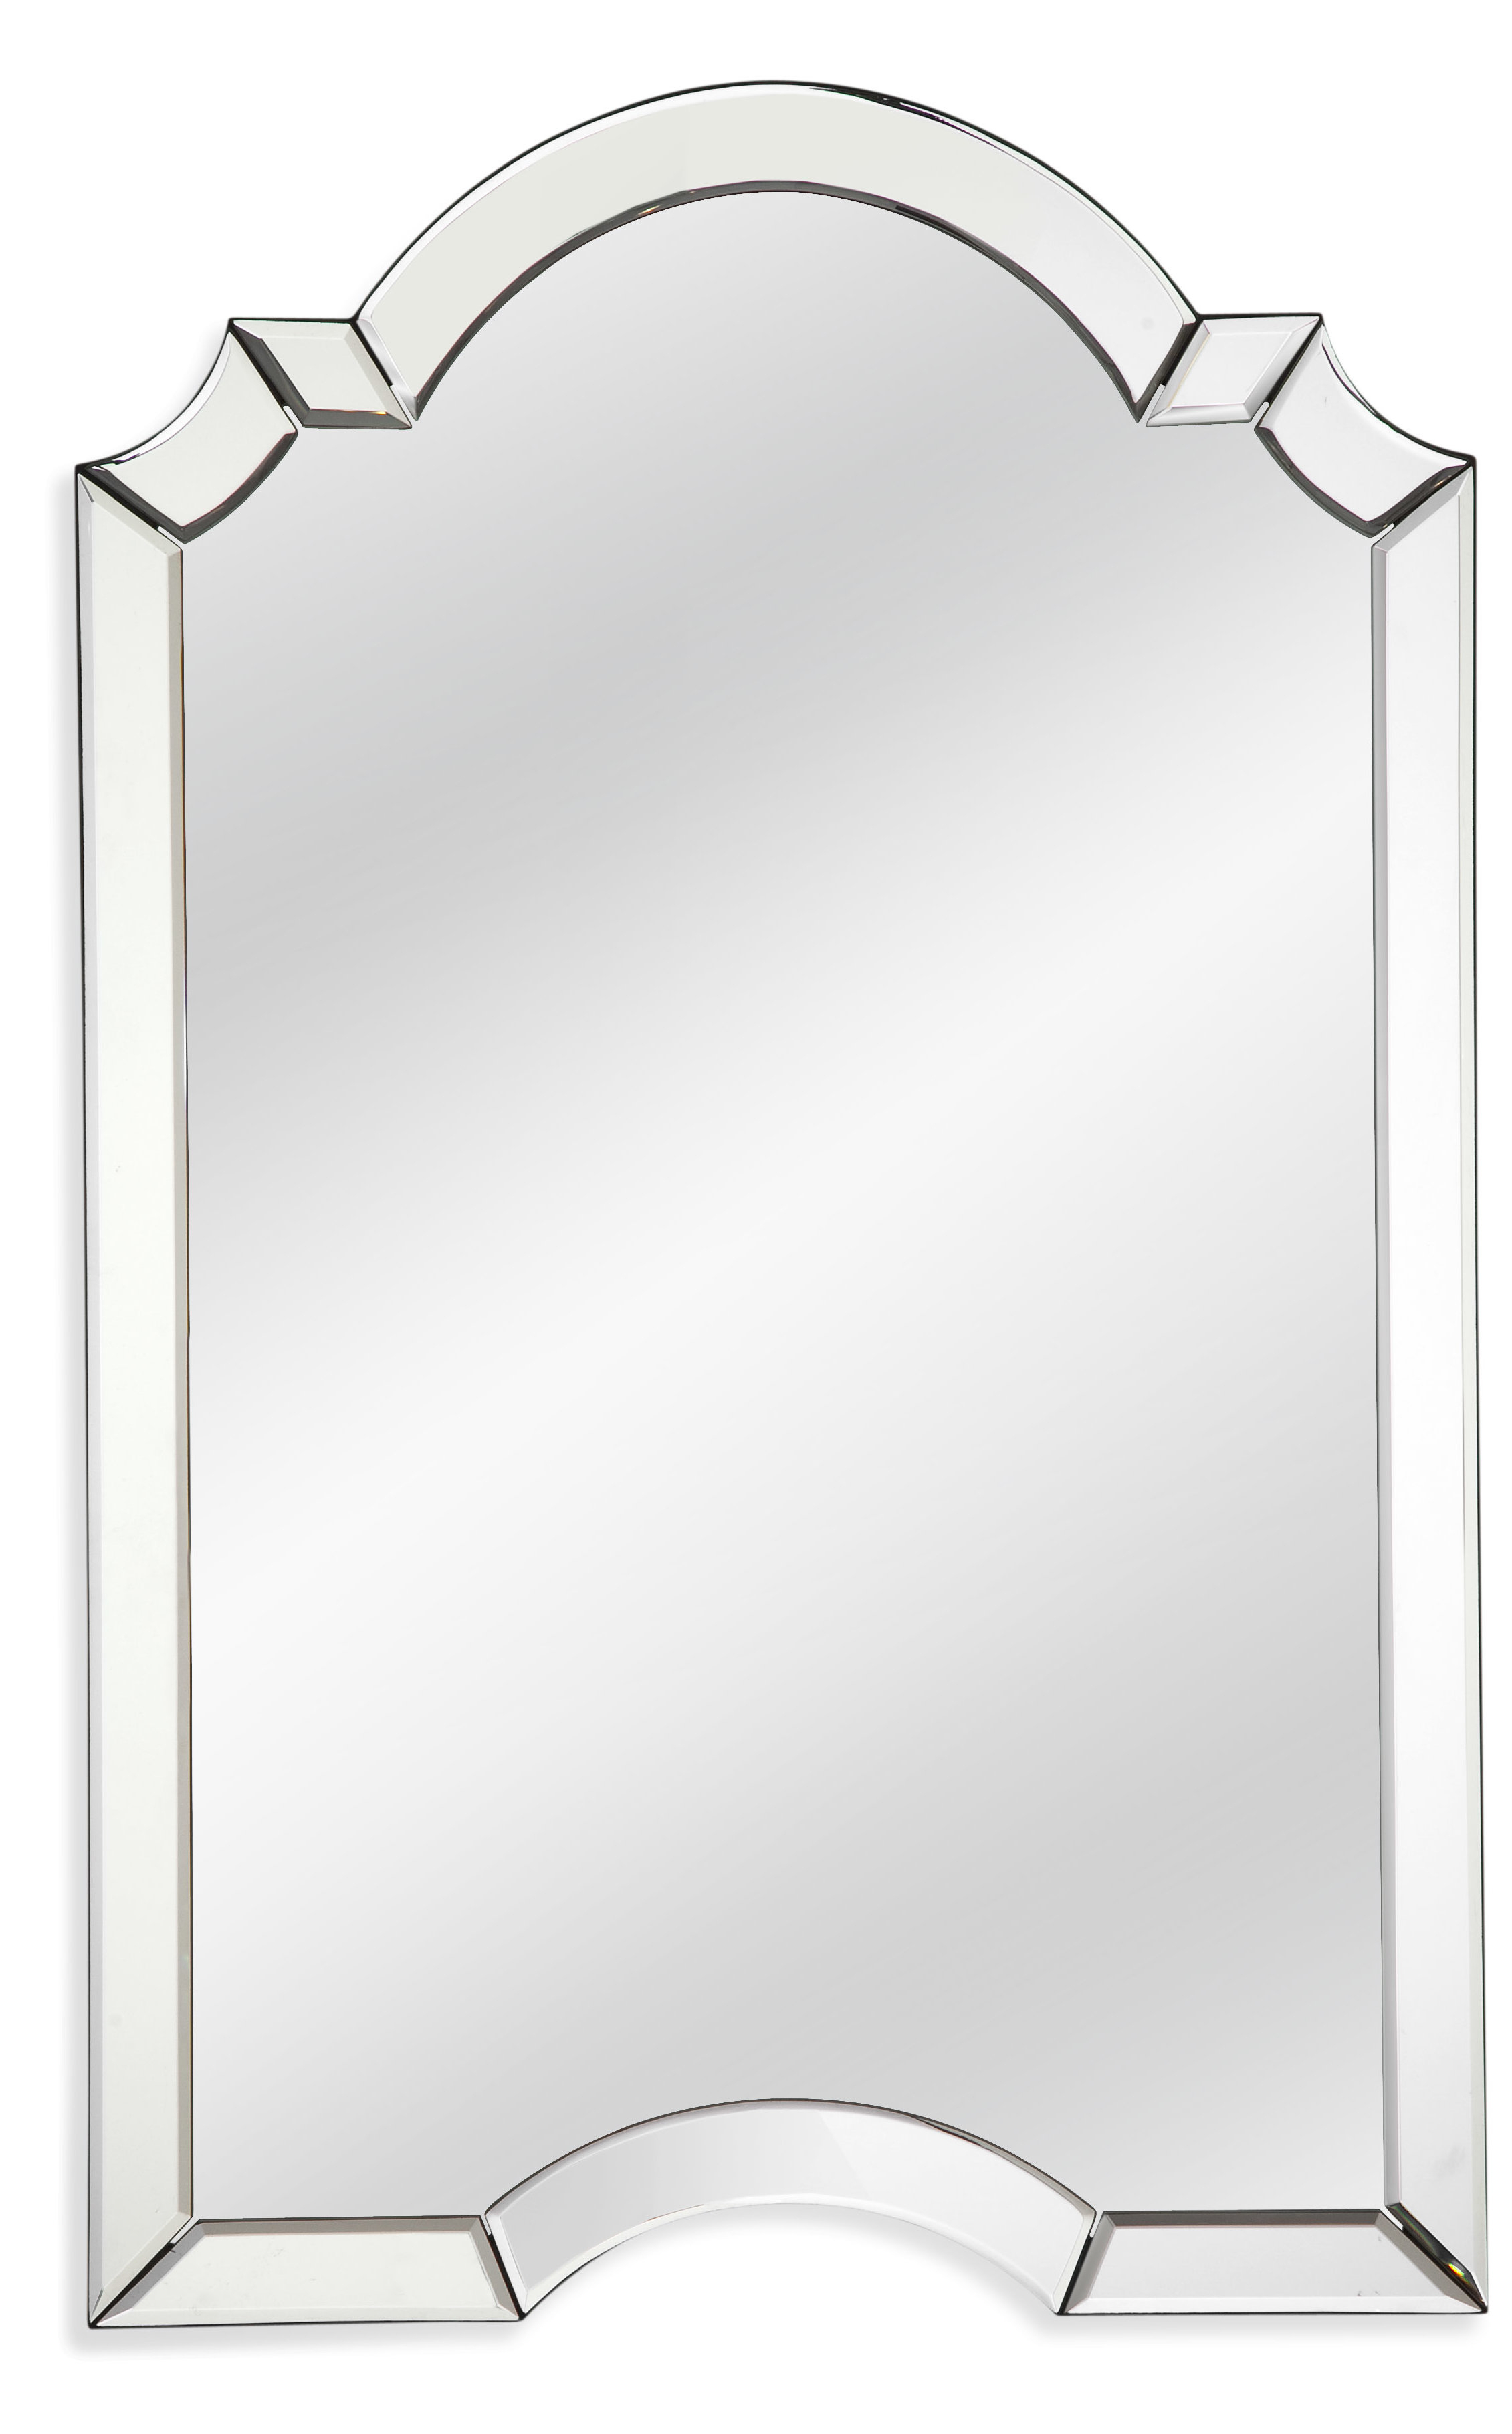 Ekaterina Arch/crowned Top Wall Mirror with regard to Dariel Tall Arched Scalloped Wall Mirrors (Image 10 of 30)